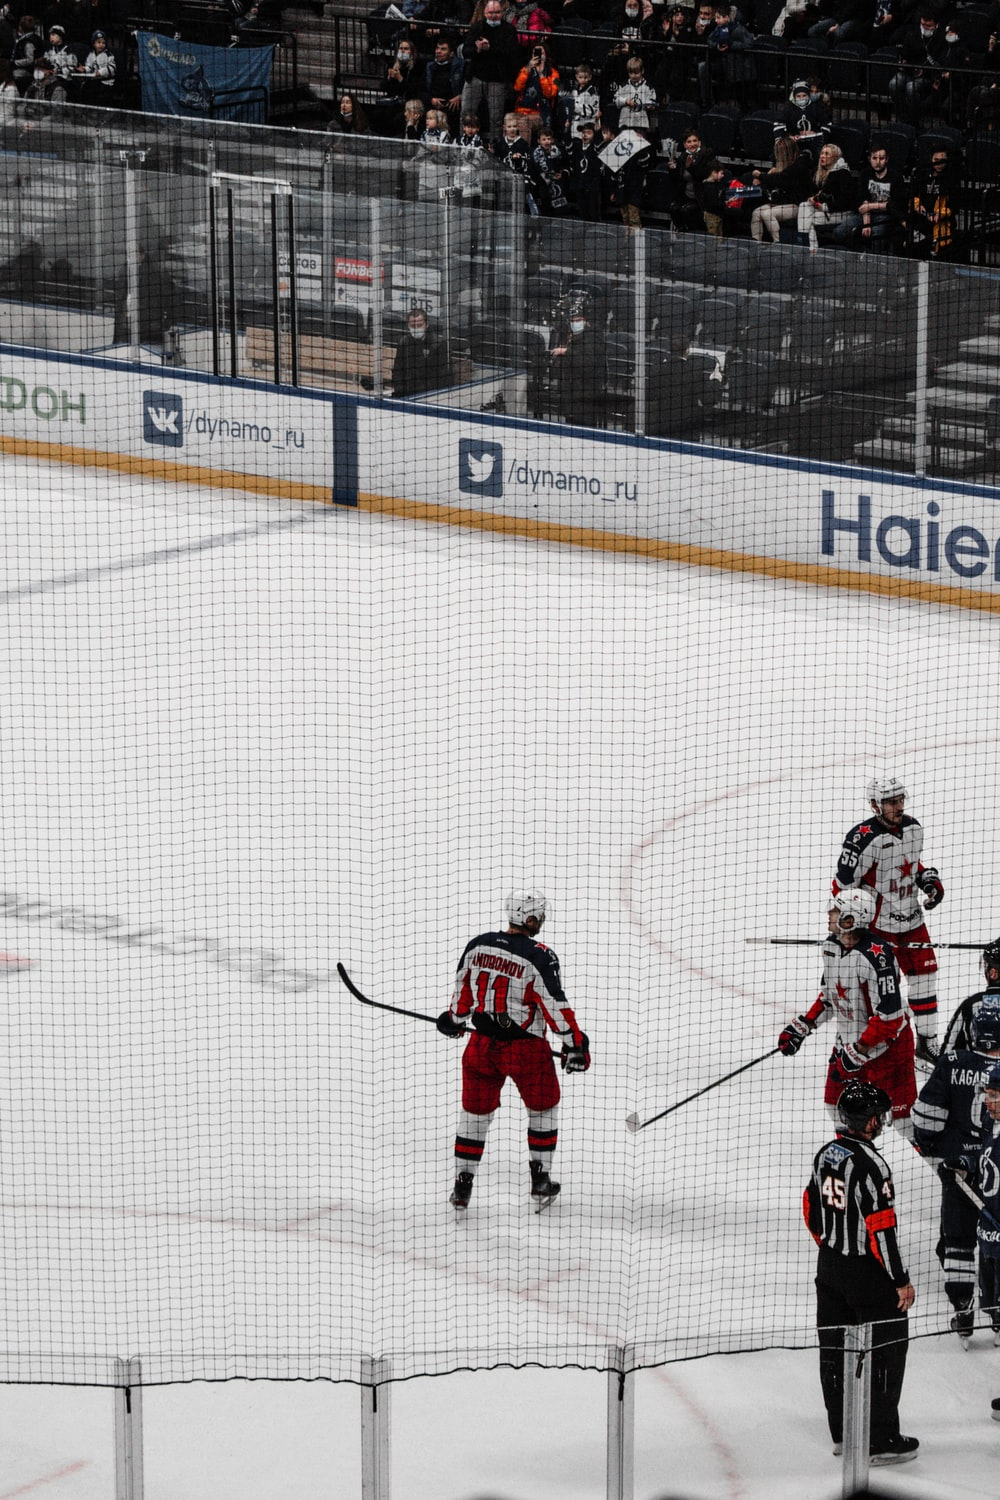 man in red and white hockey jersey playing hockey